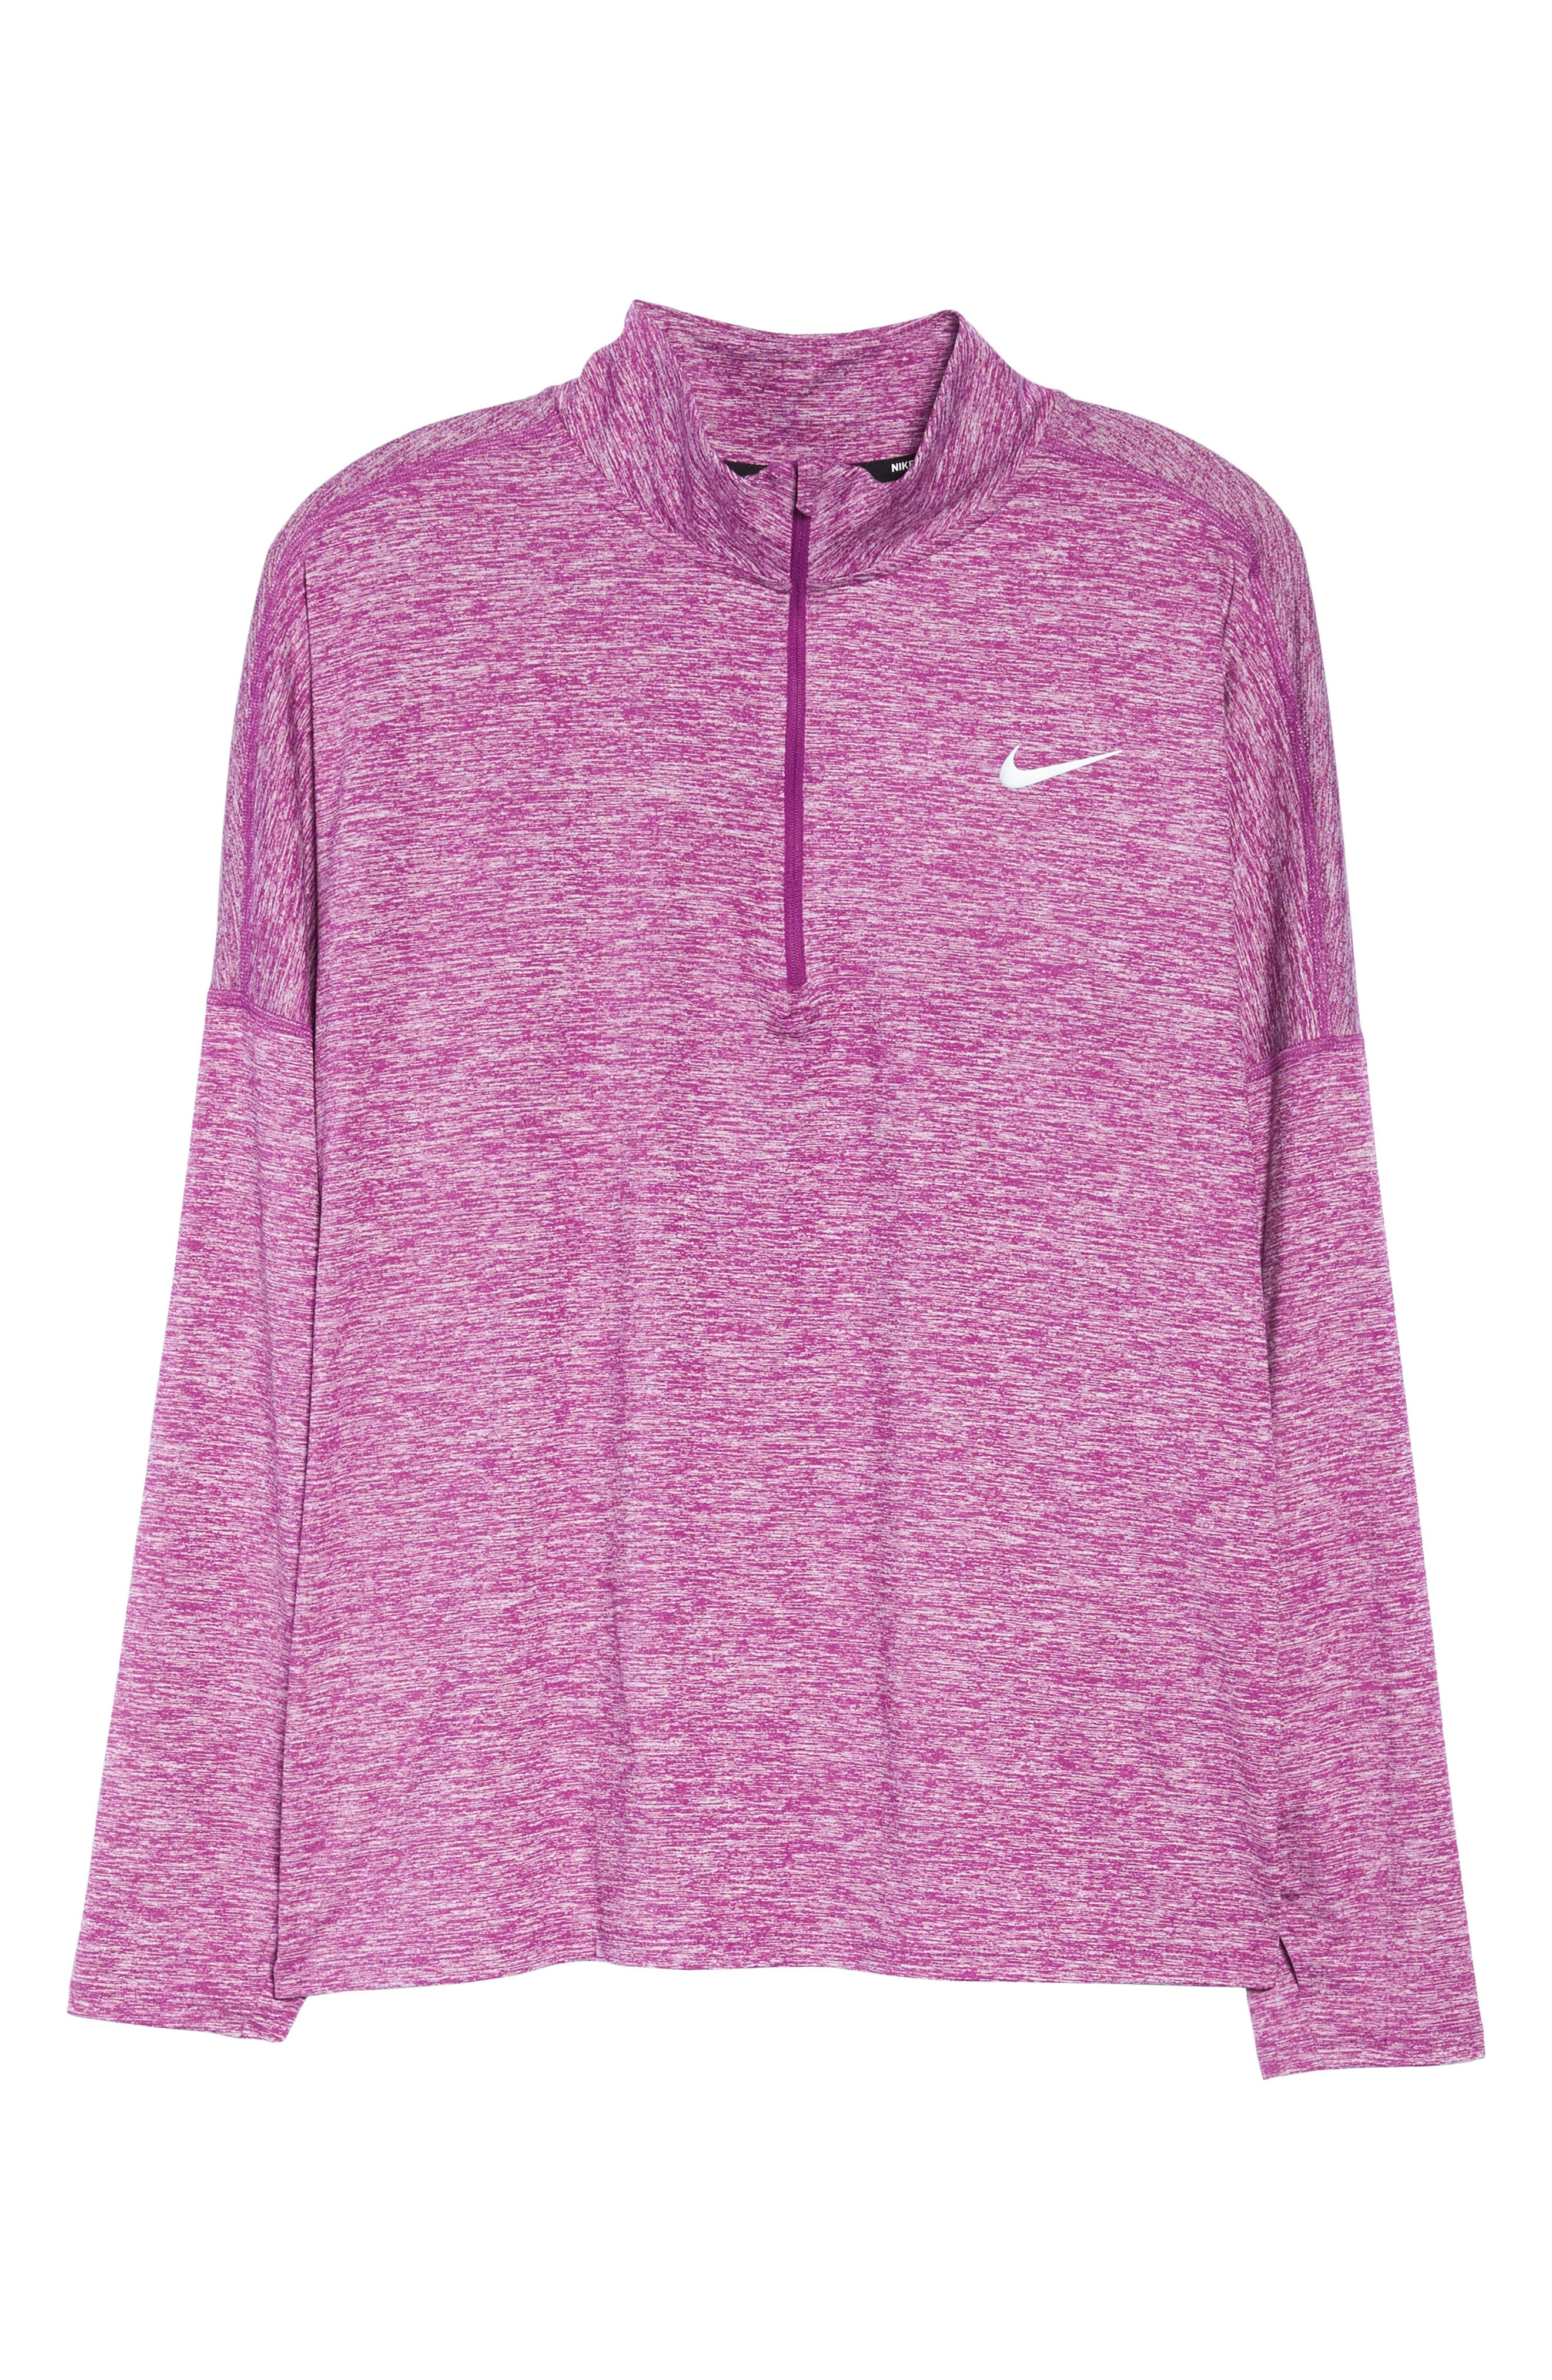 Dry Element Half Zip Top,                             Alternate thumbnail 5, color,                             Bold Berry/ Heather